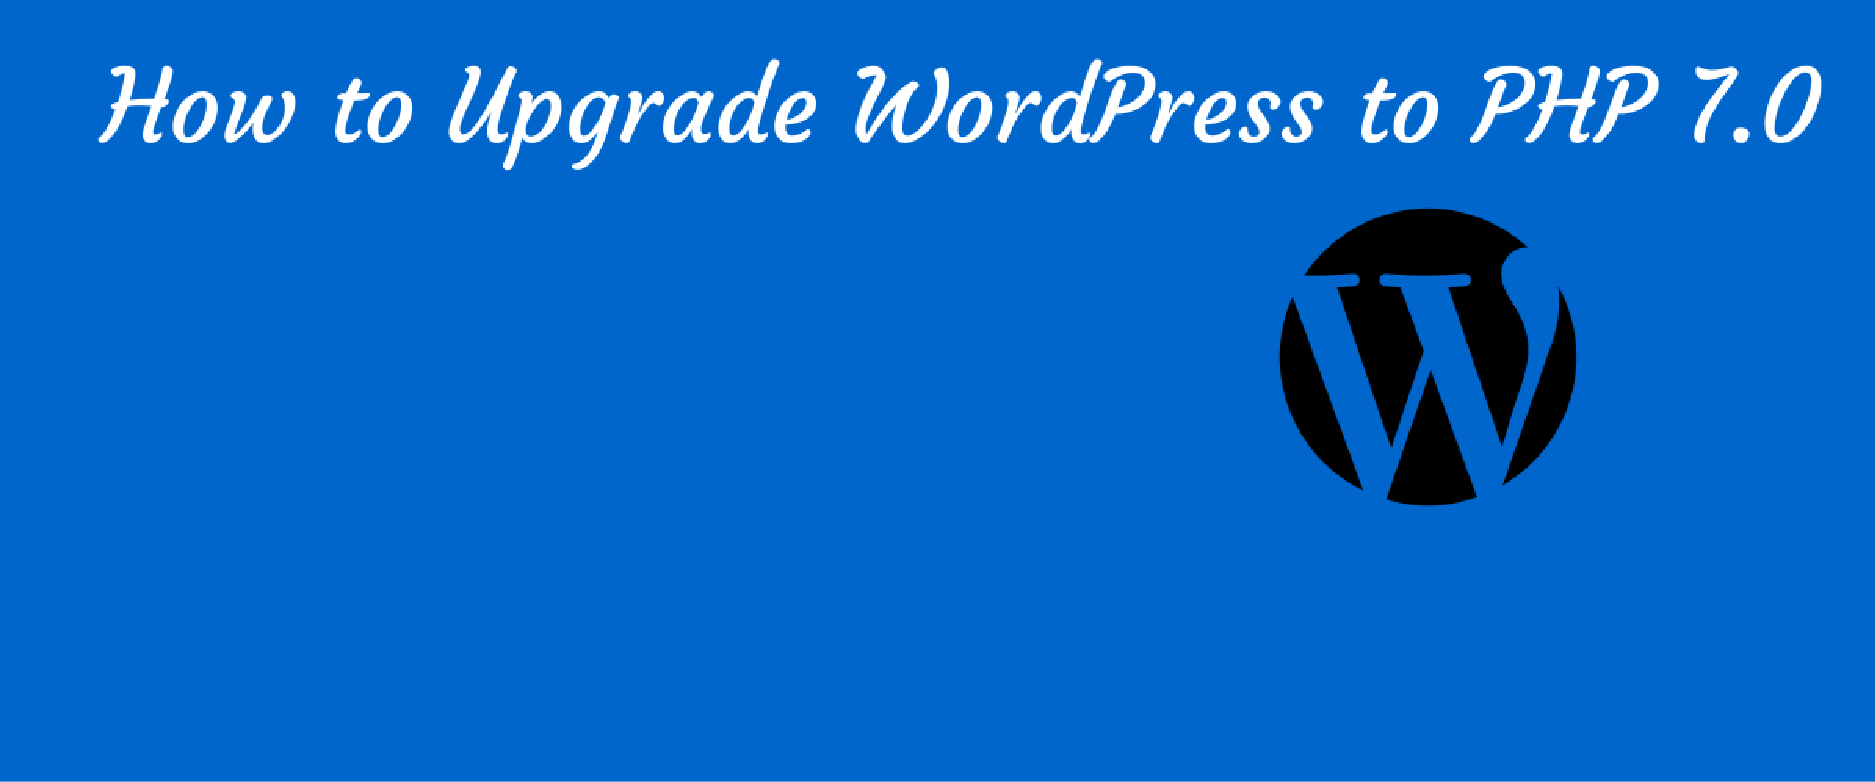 how to upgrade to wordpress php 7.0